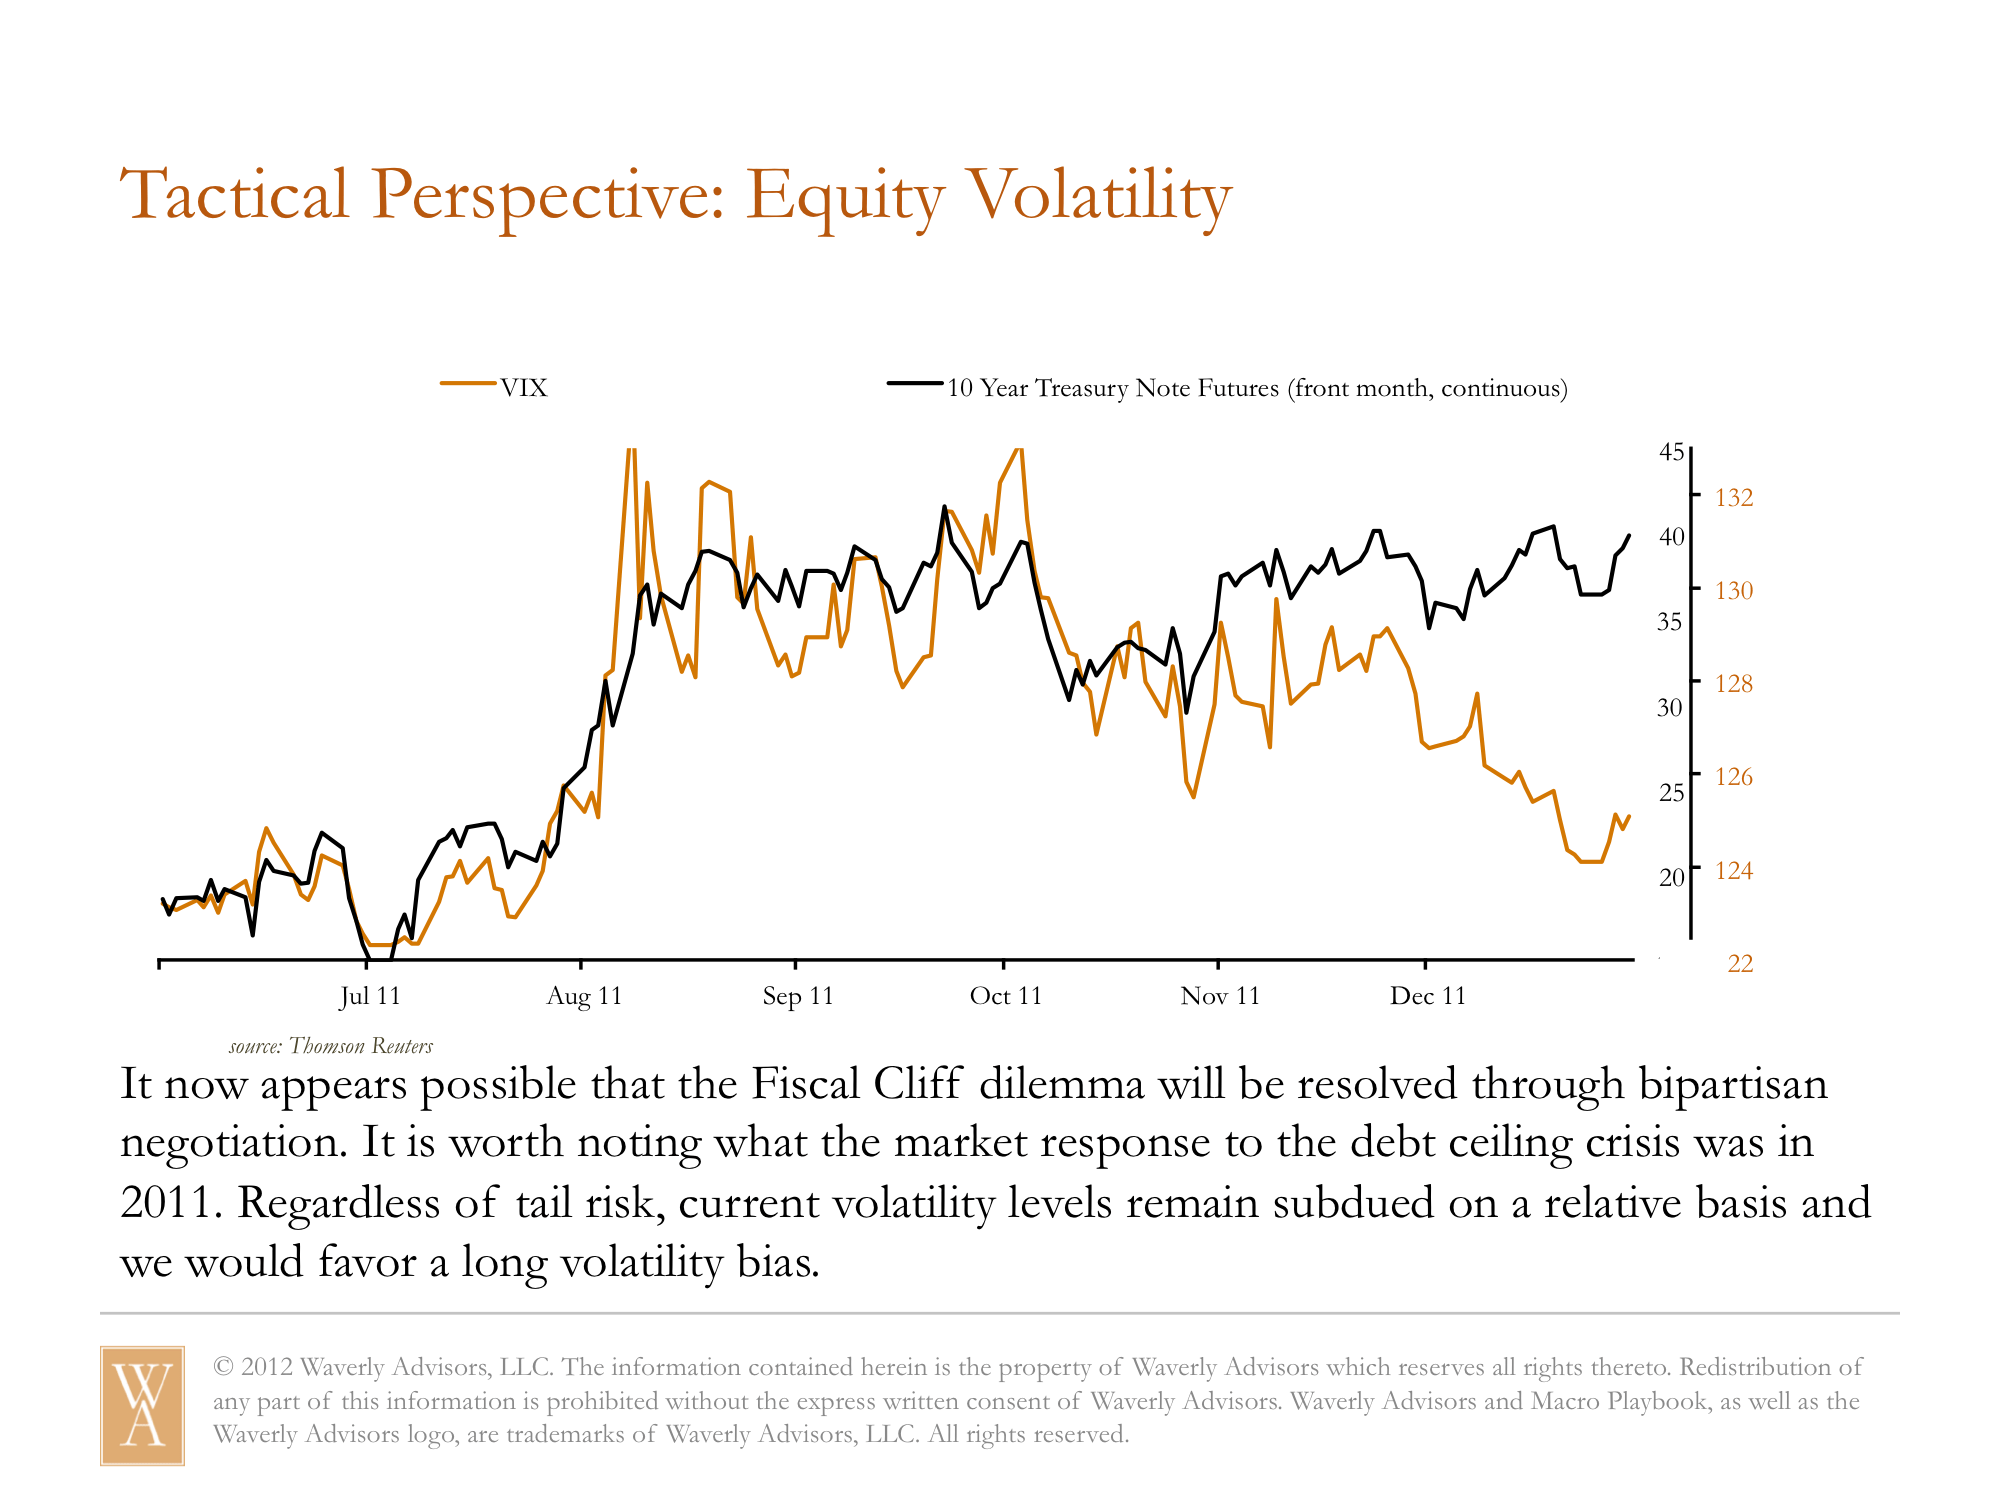 Volatility has not risen much in spite of the bond rally, and it could eventually move to fill the gap